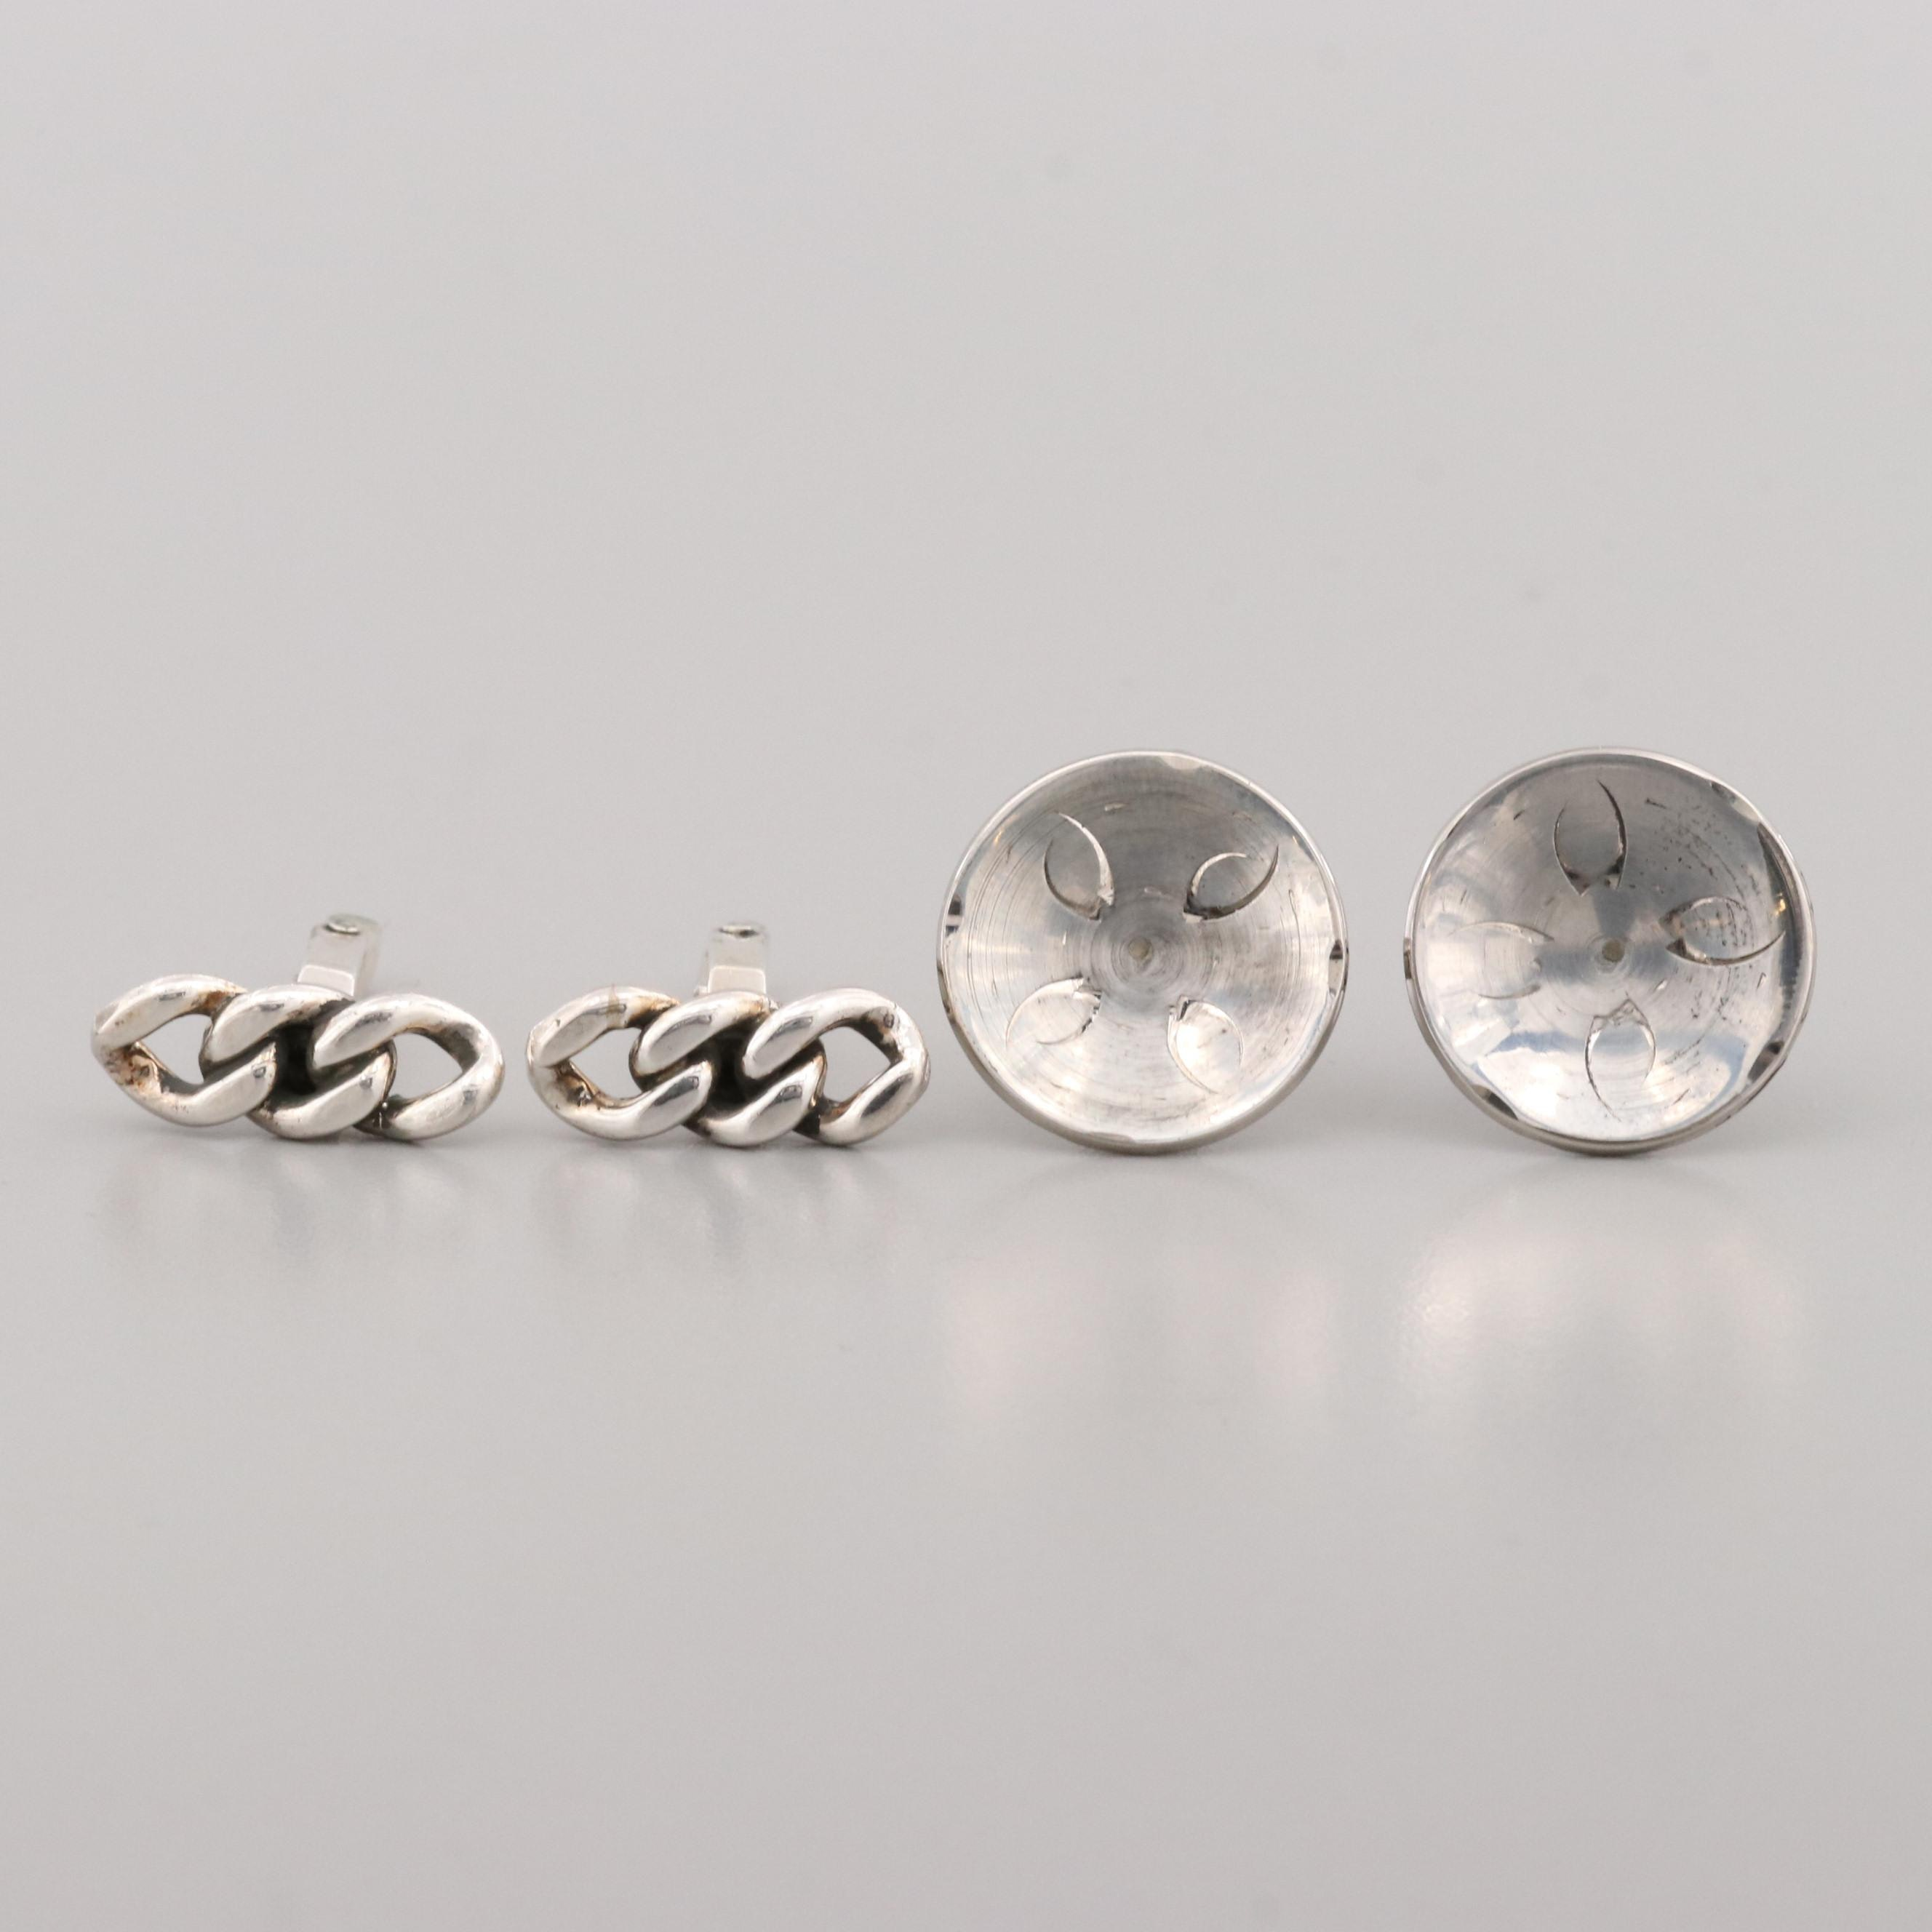 Two Pair of Sterling Silver Cufflinks